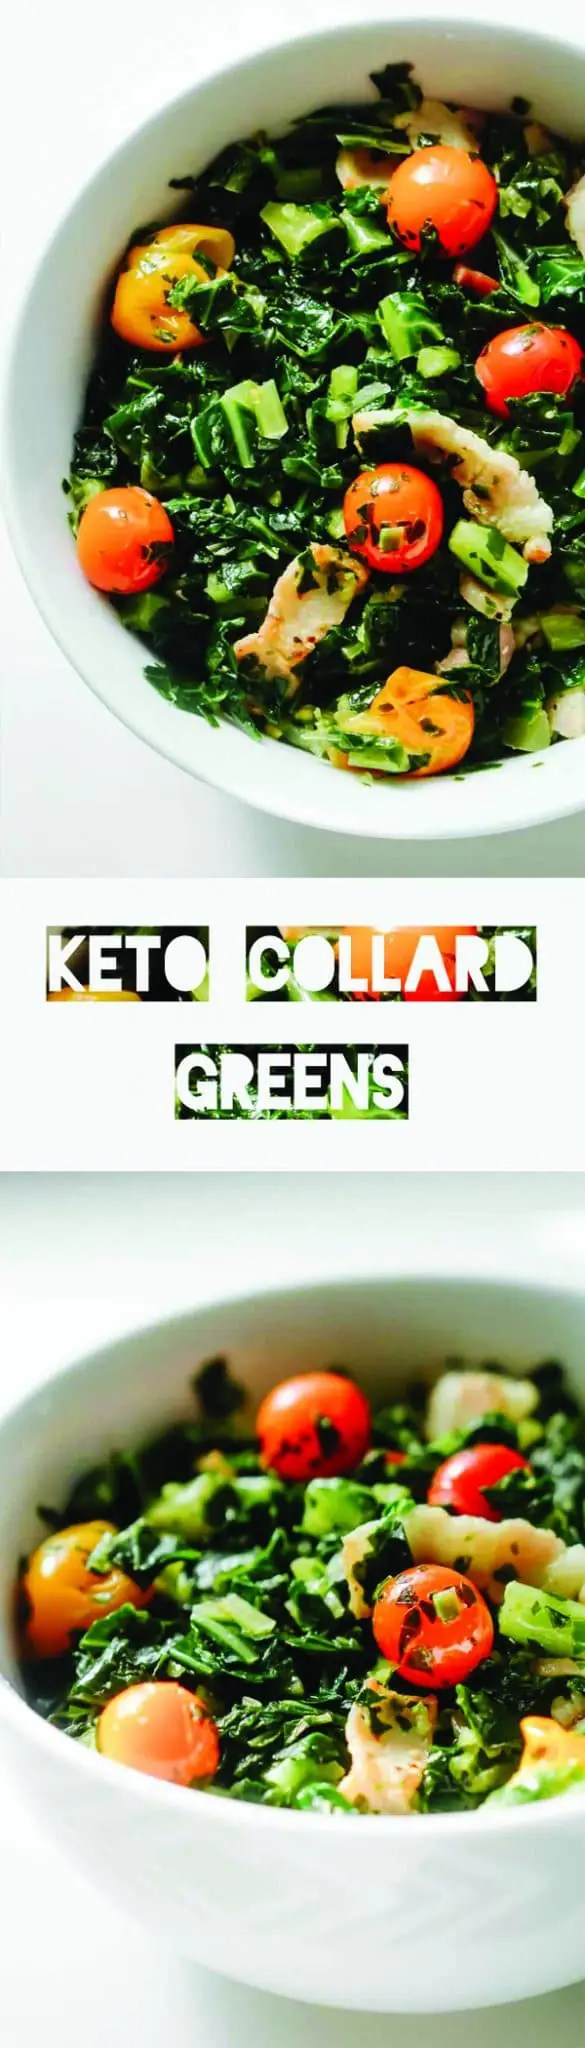 Keto Collard Greens Recipe | Keto Recipes | Low Carb Vegetables | Atkins | LCHF